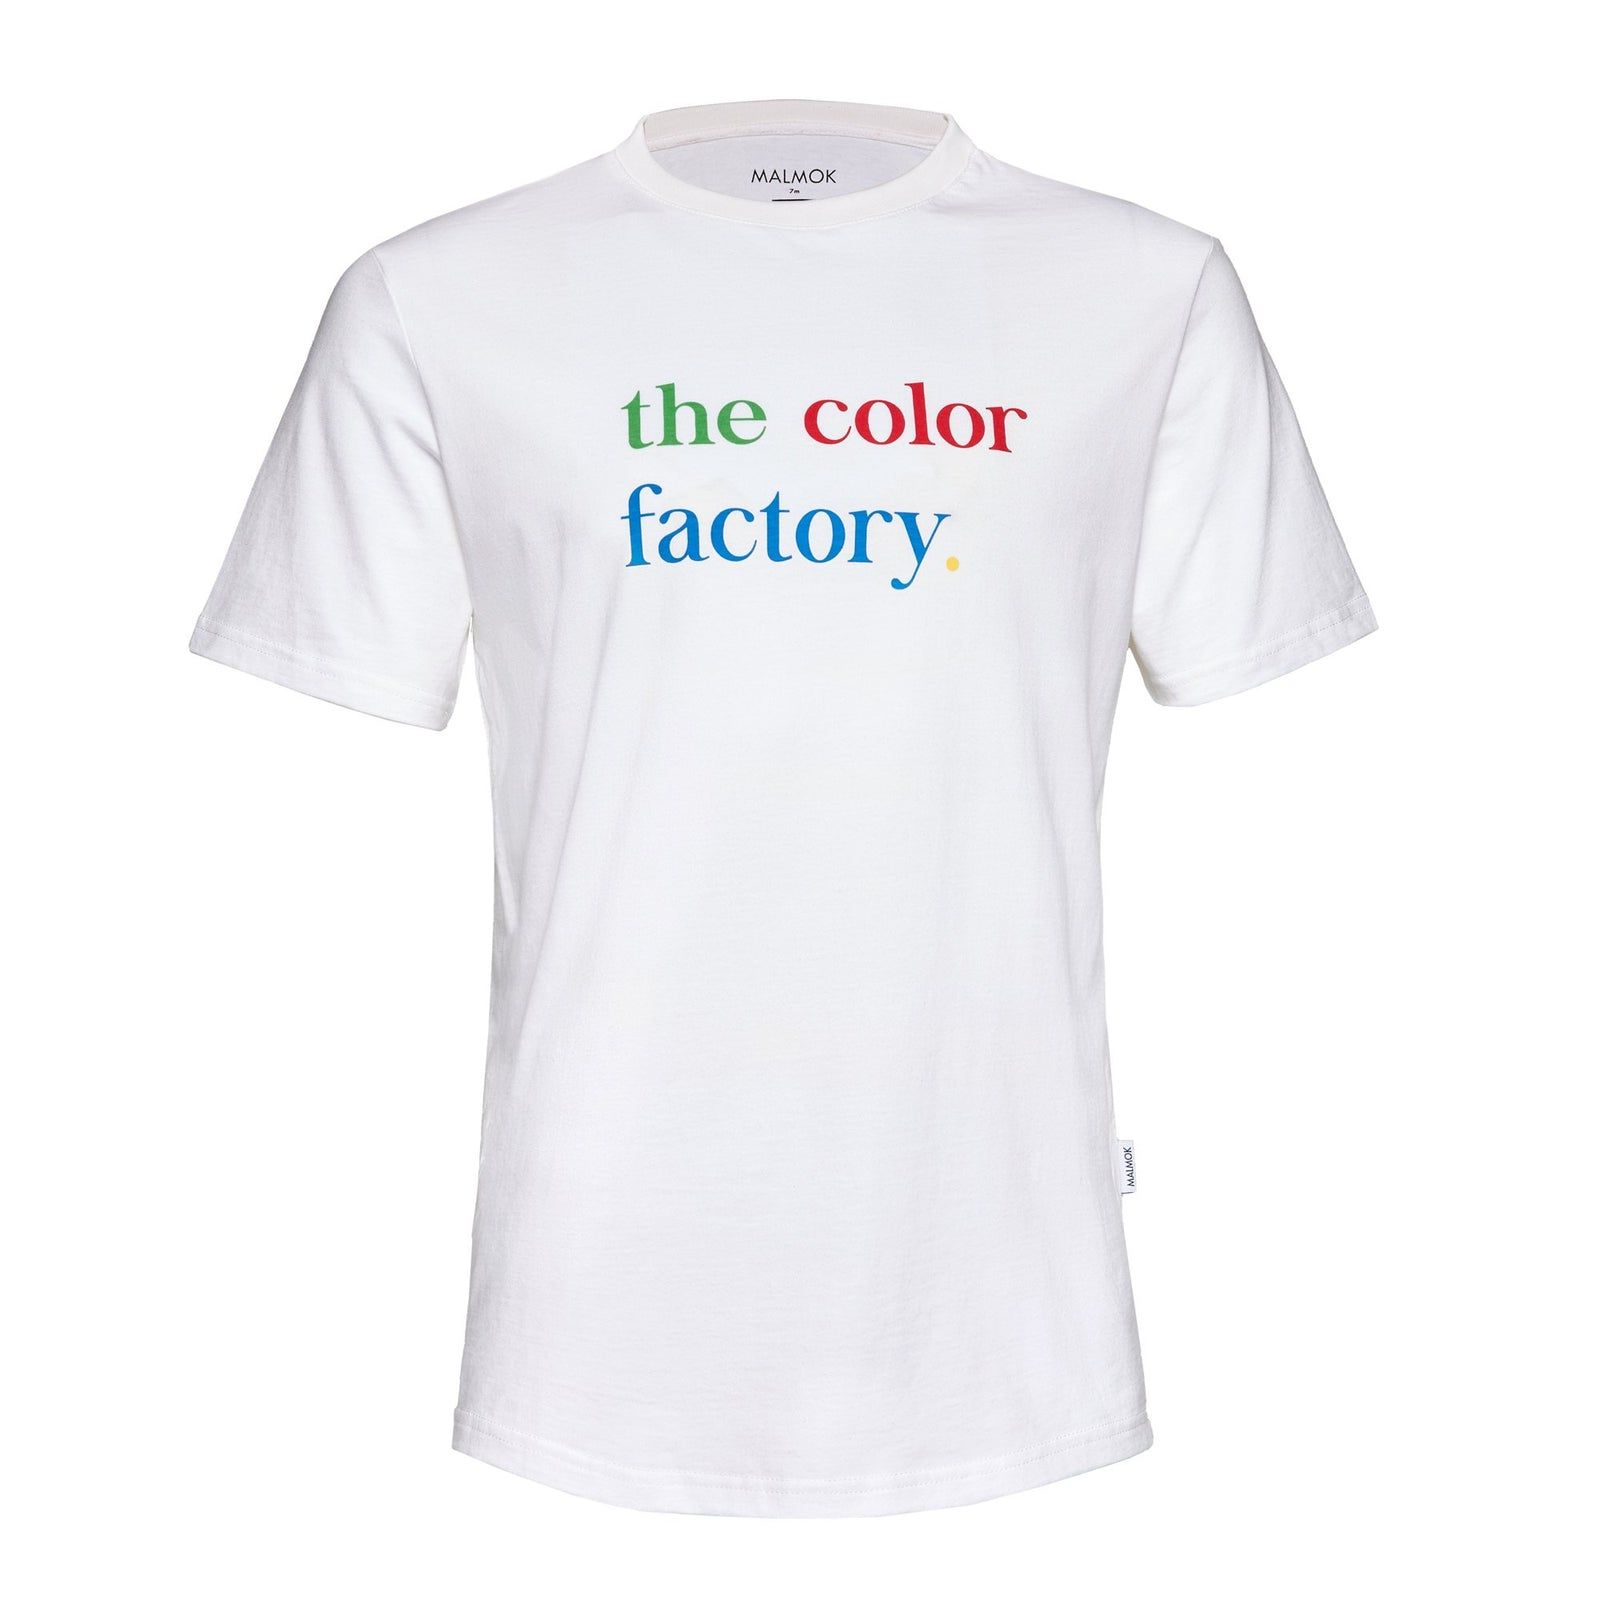 Malmok Camisetas - The Color Factory